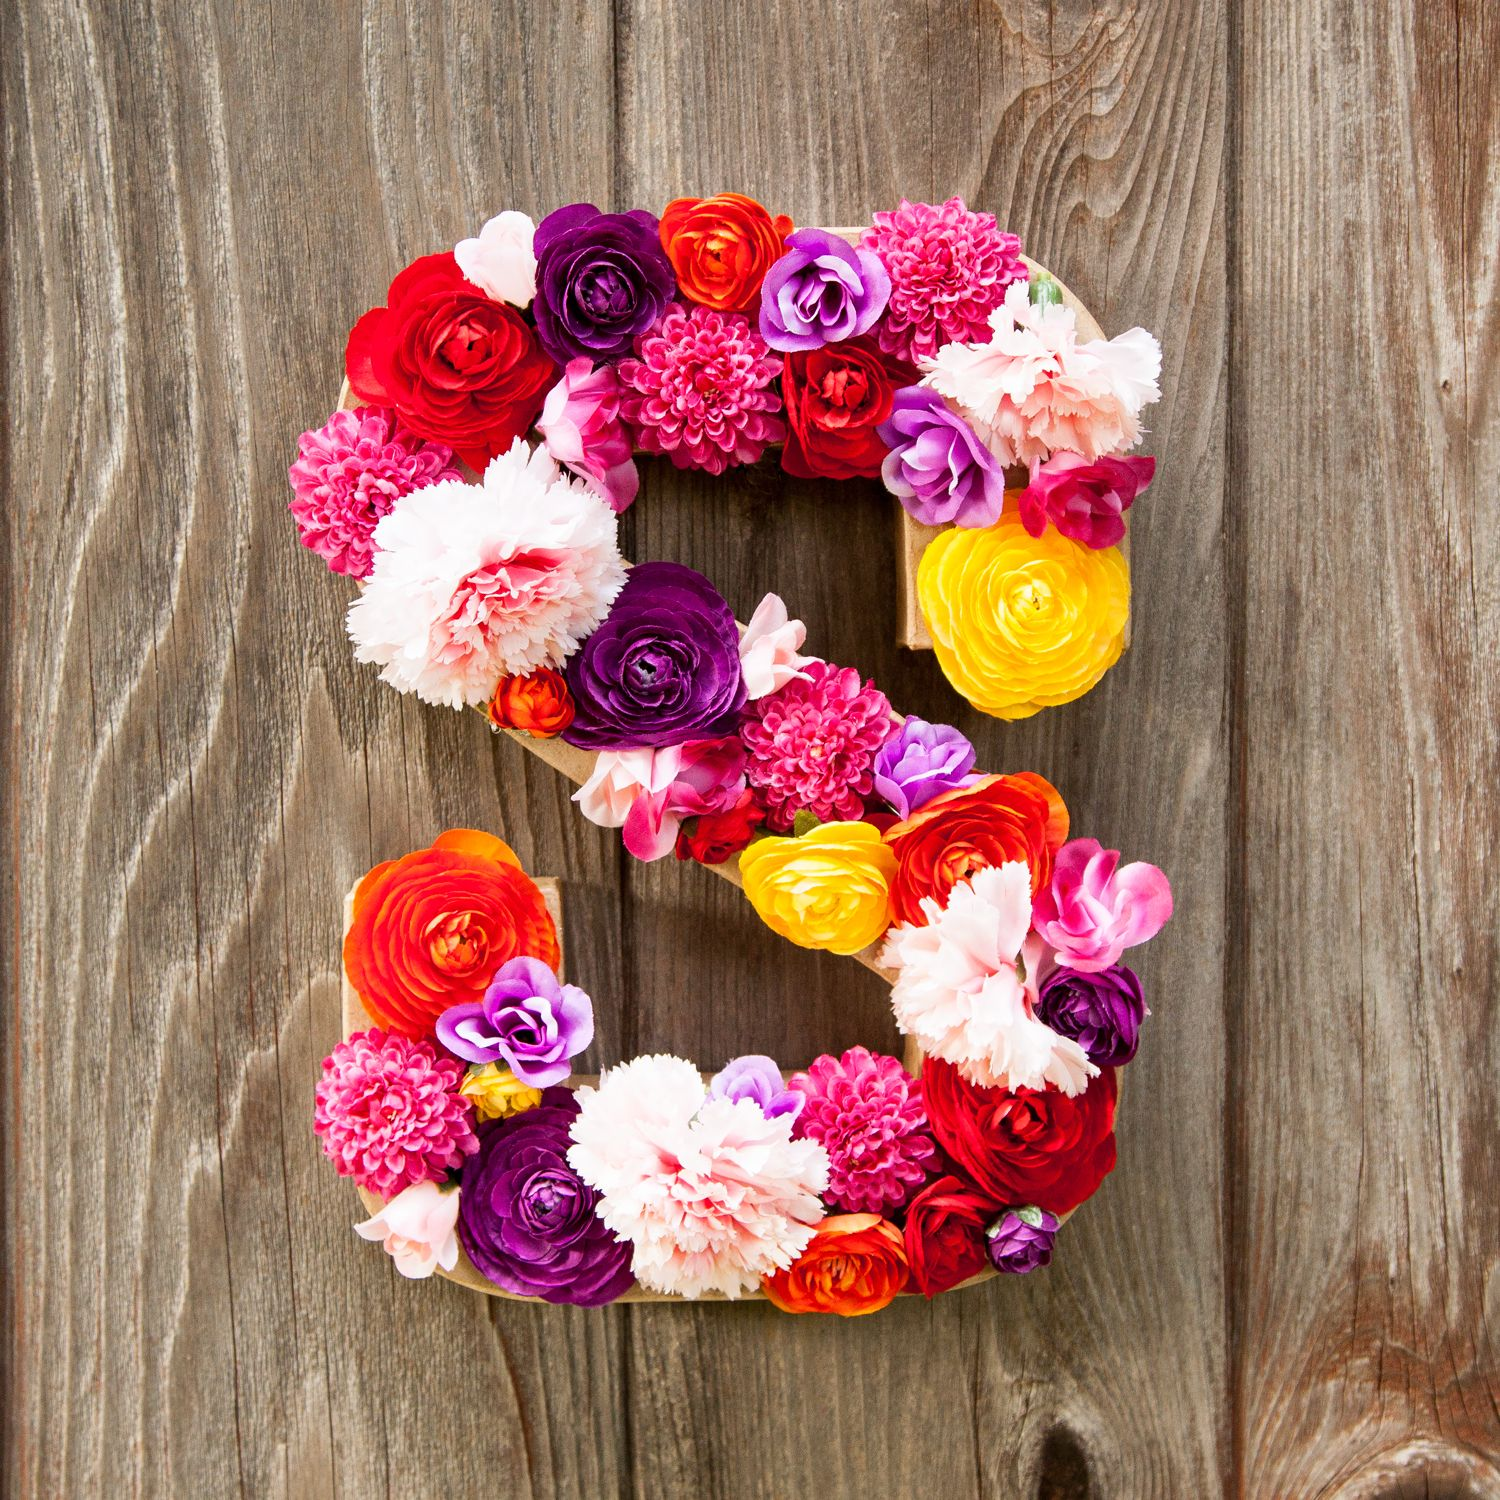 Diy Flower Letter Flower Letters Crafts Diy Flowers